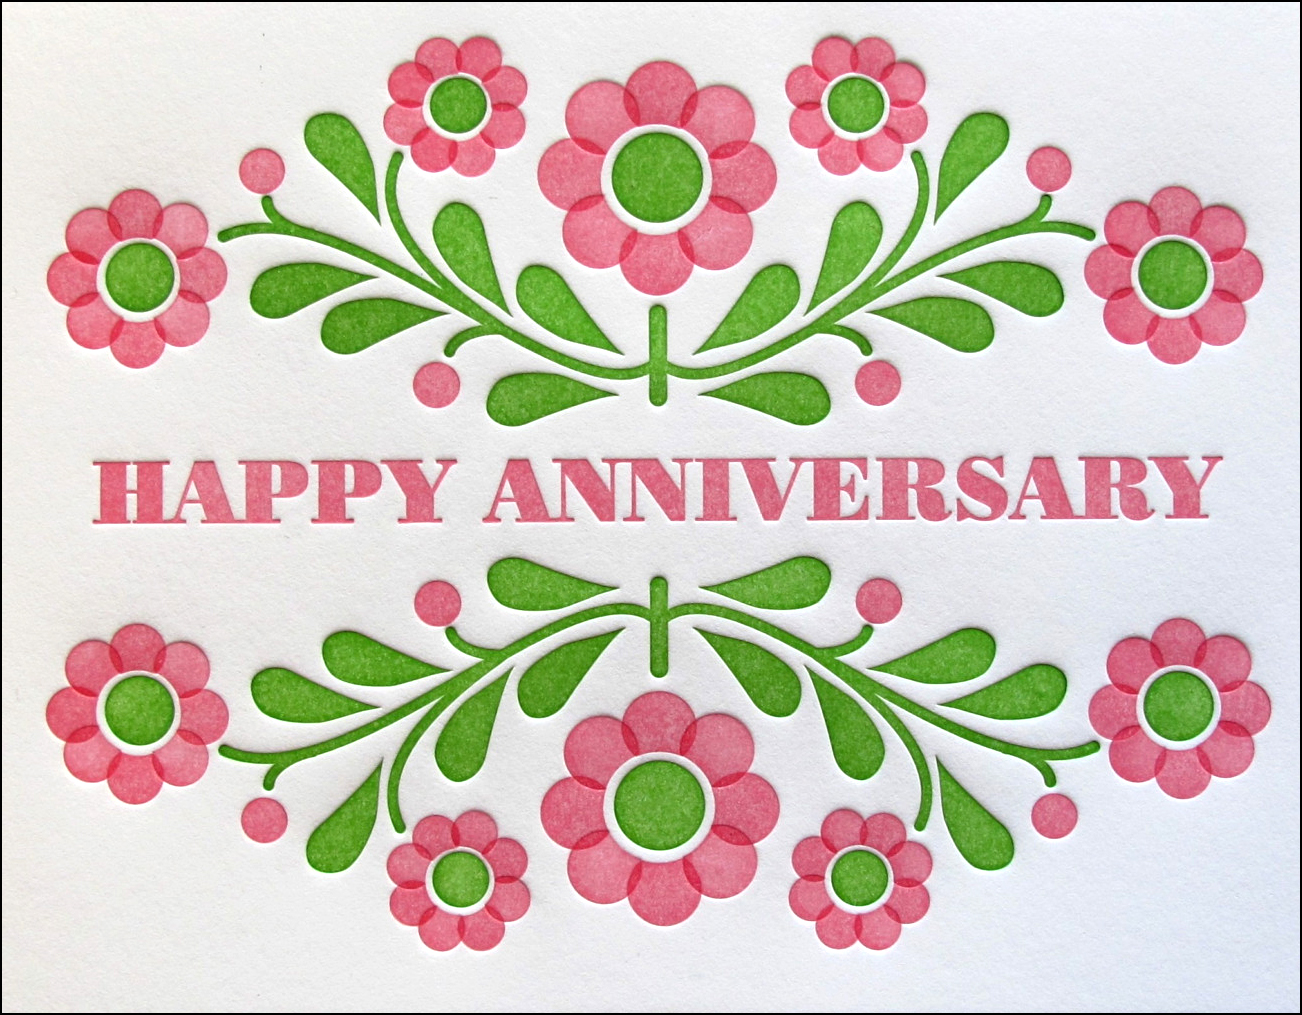 Happy Marriage Anniversary Greeting Cards Hd Wallpapers P Free Hot Wallpapers